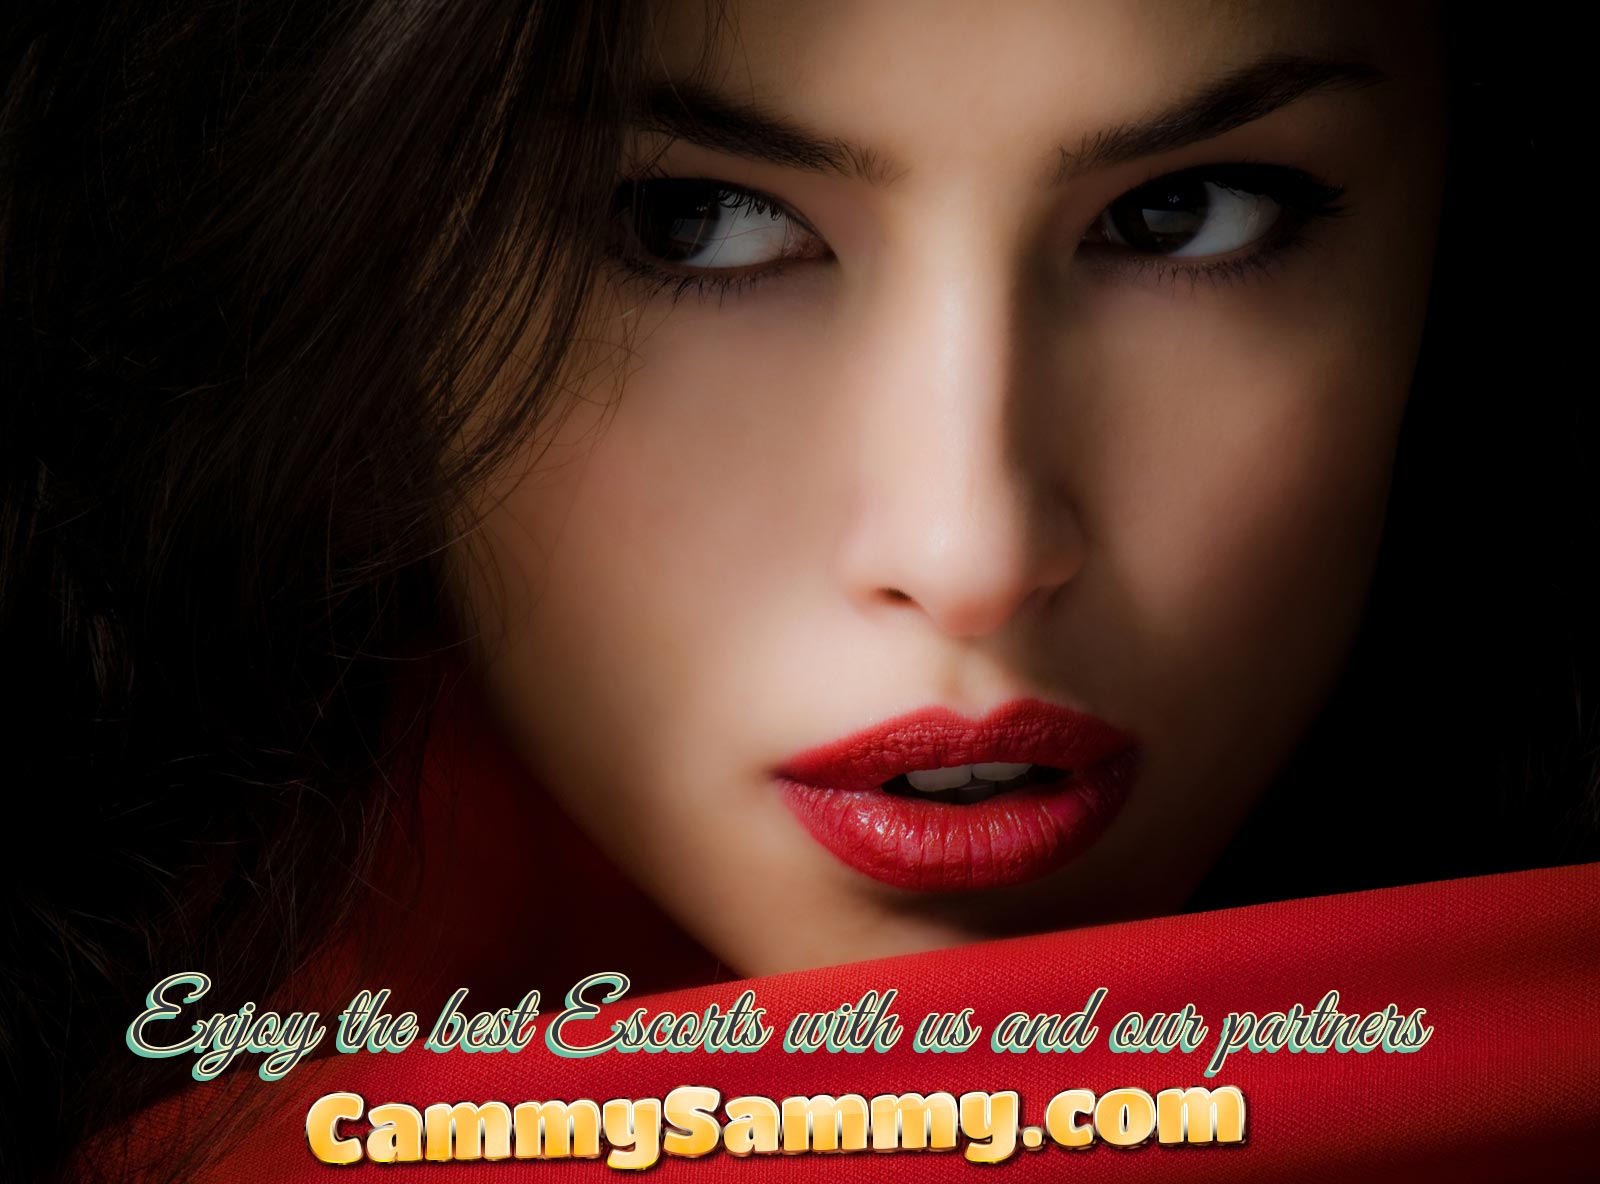 Recomended Female Escort services in Bangalore